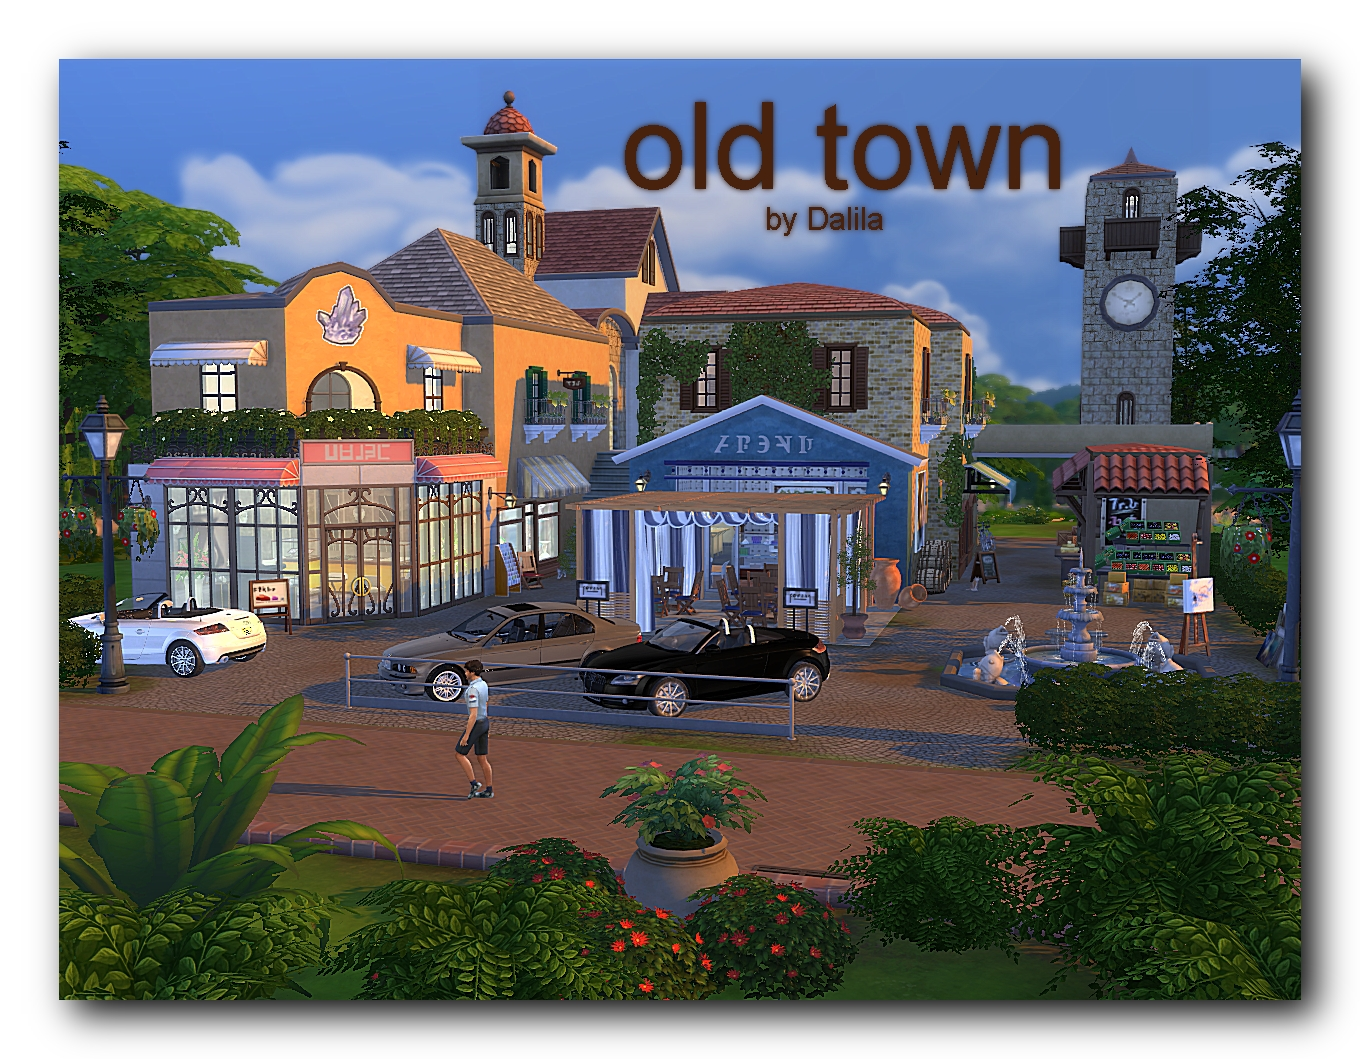 Old town by Dalila